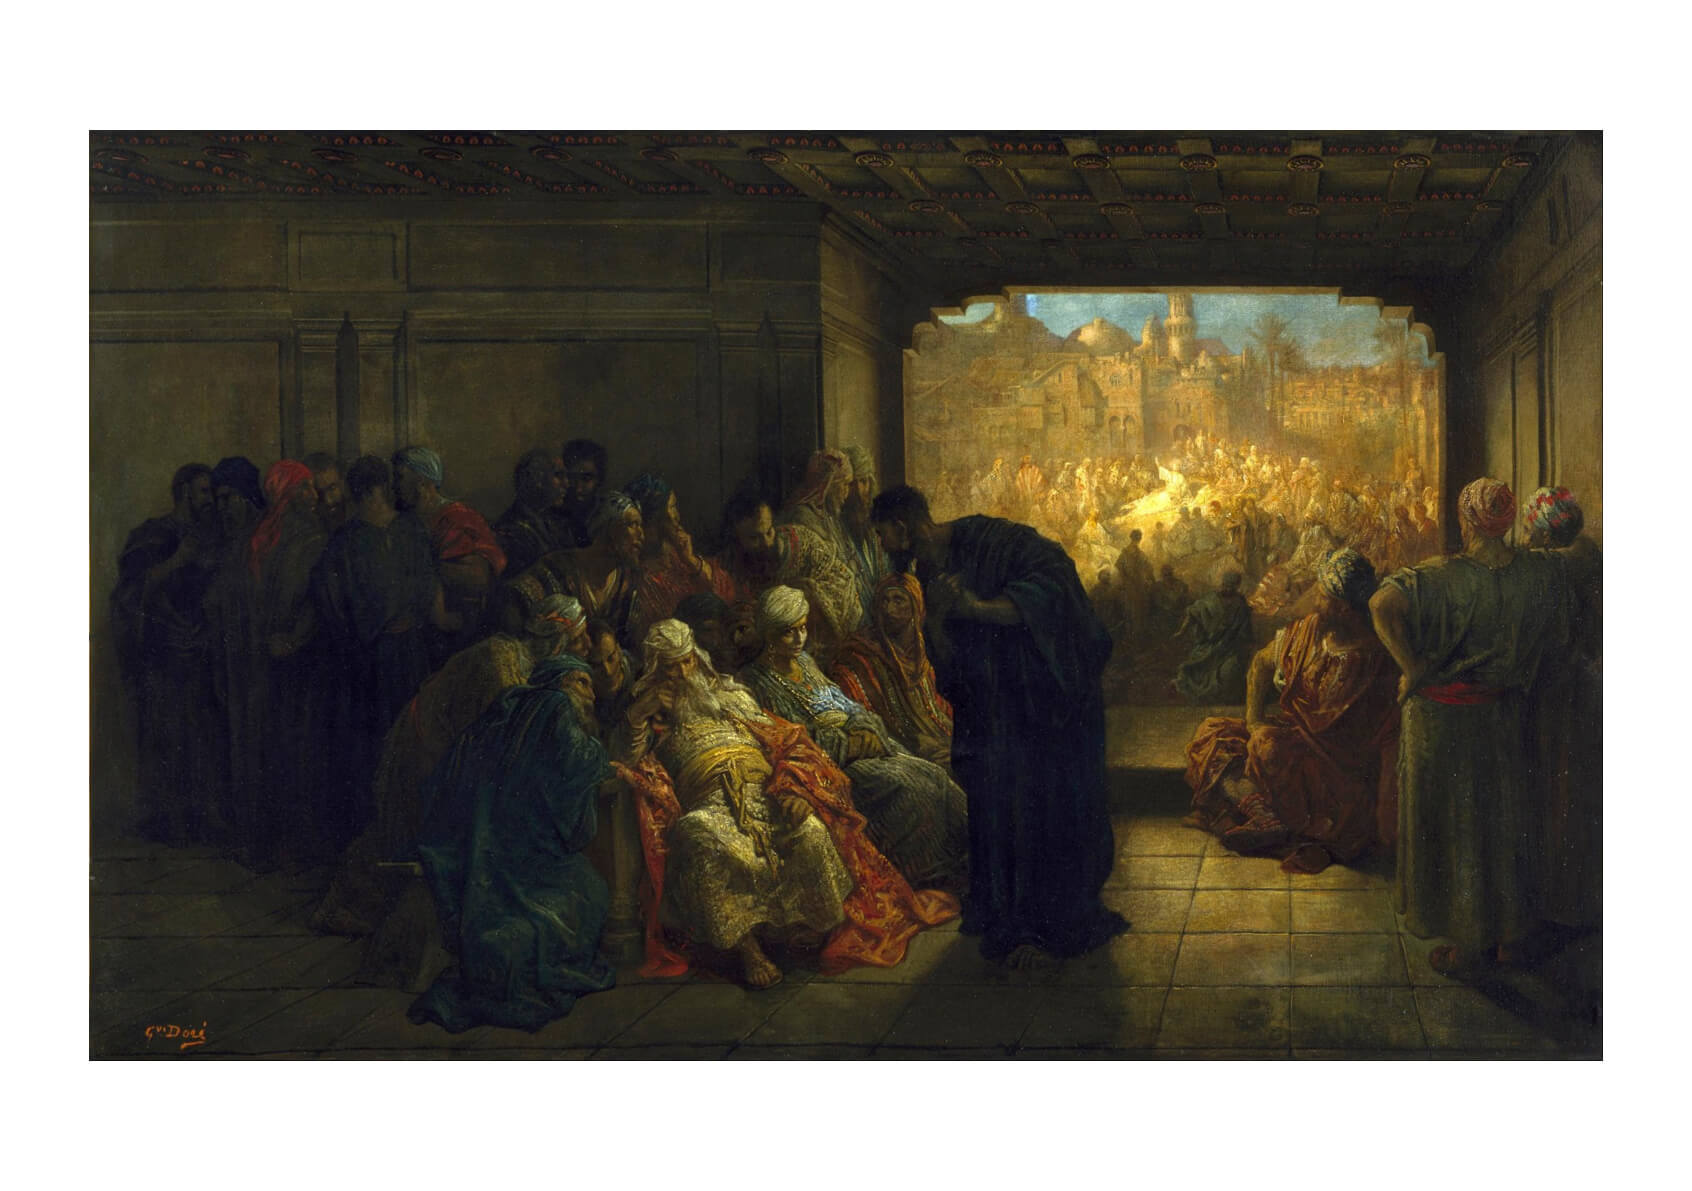 Gustave Doré - The House of Caiaphas